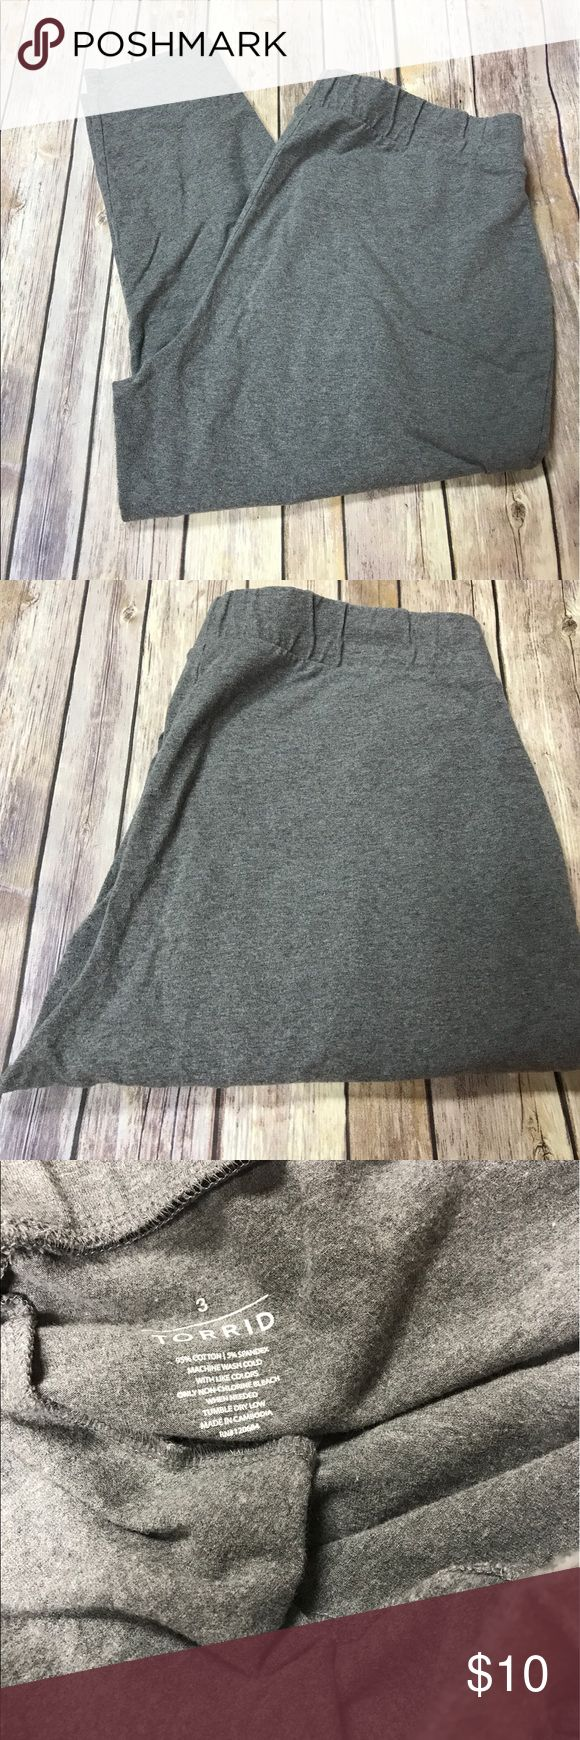 Pre-Loved Torrid Gray/Grey leggings Ankle Cut Gray ankle cut leggings. Good condition, only worn a handful of times. Only physical wear is the piling as shown in pictures. torrid Pants Ankle & Cropped